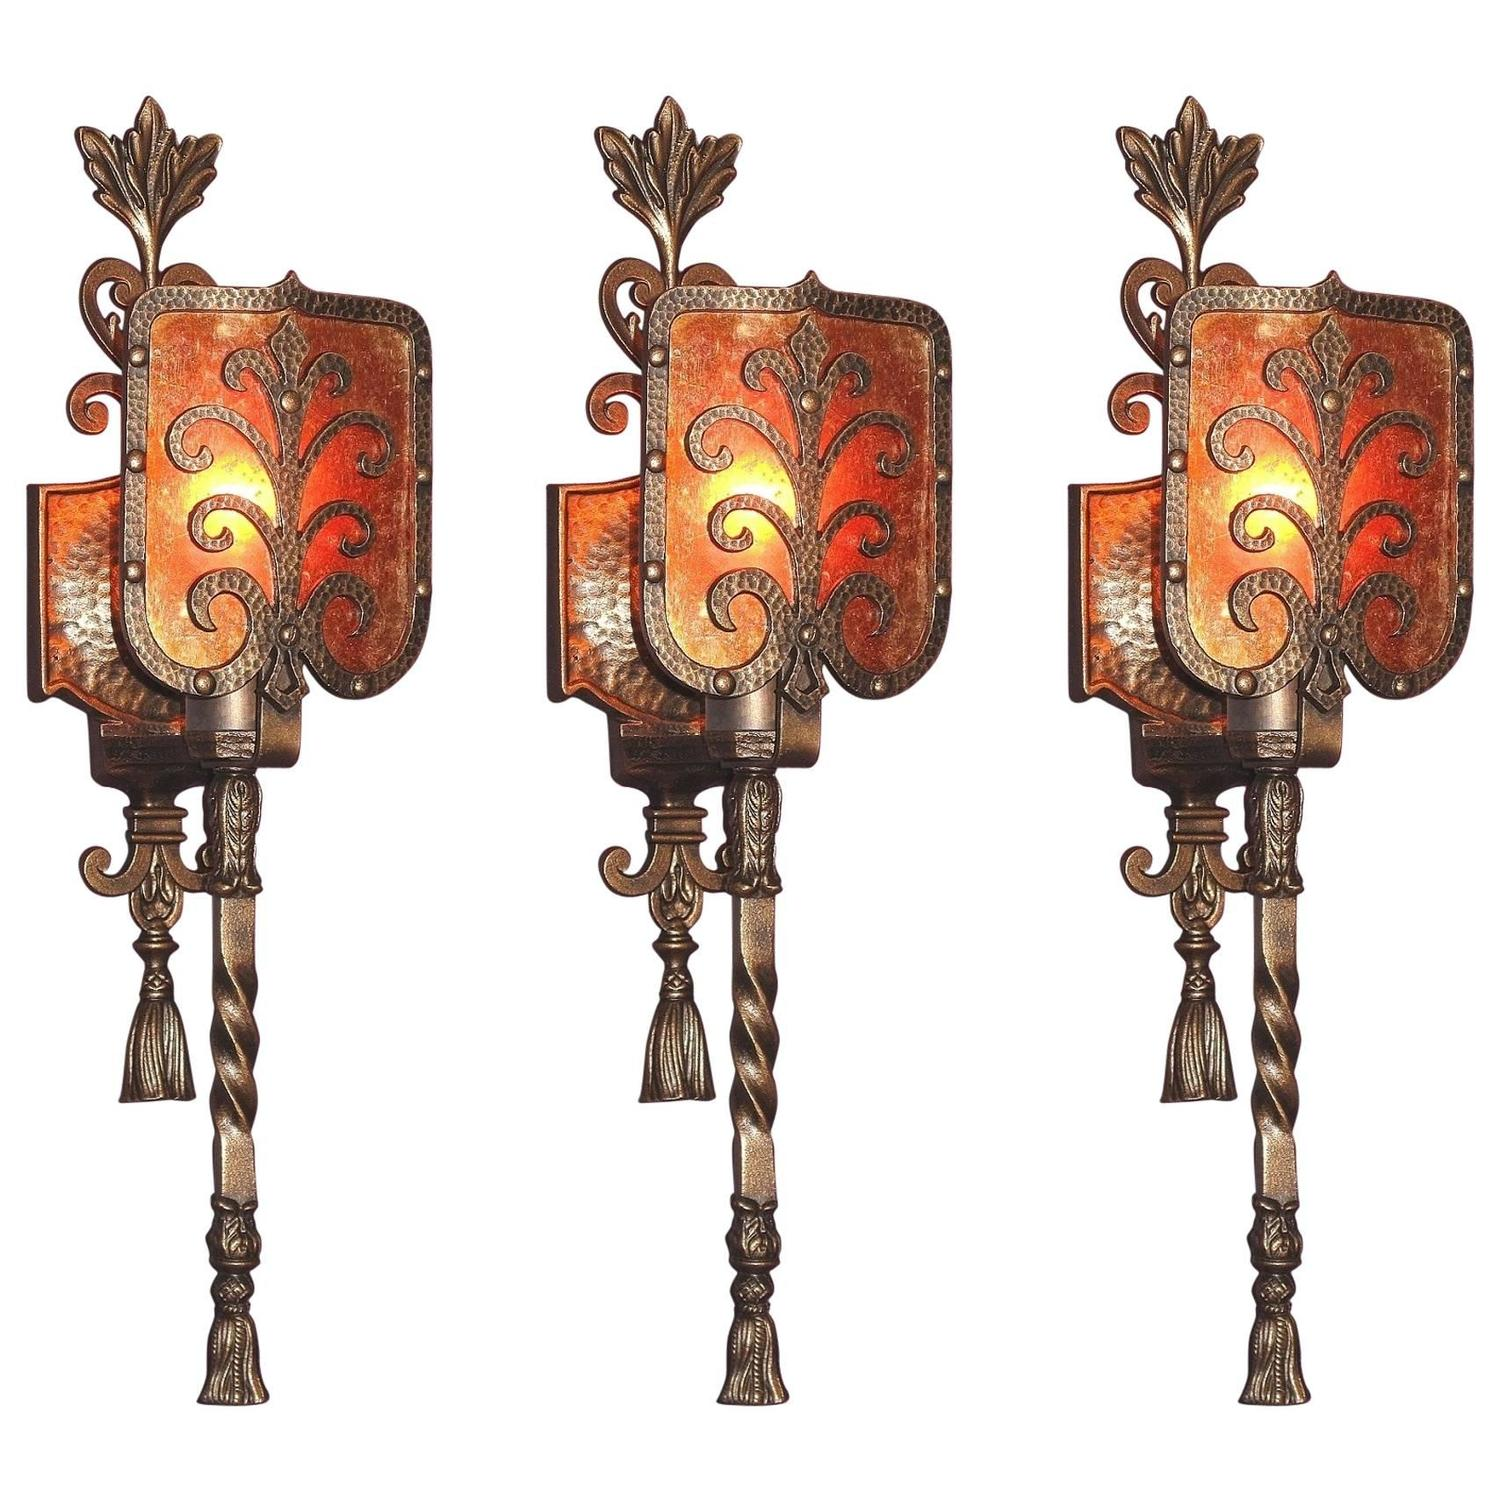 1920s Spanish Bungalow Plans: 1920s Spanish Revival Sconces With New Mica Priced Each At